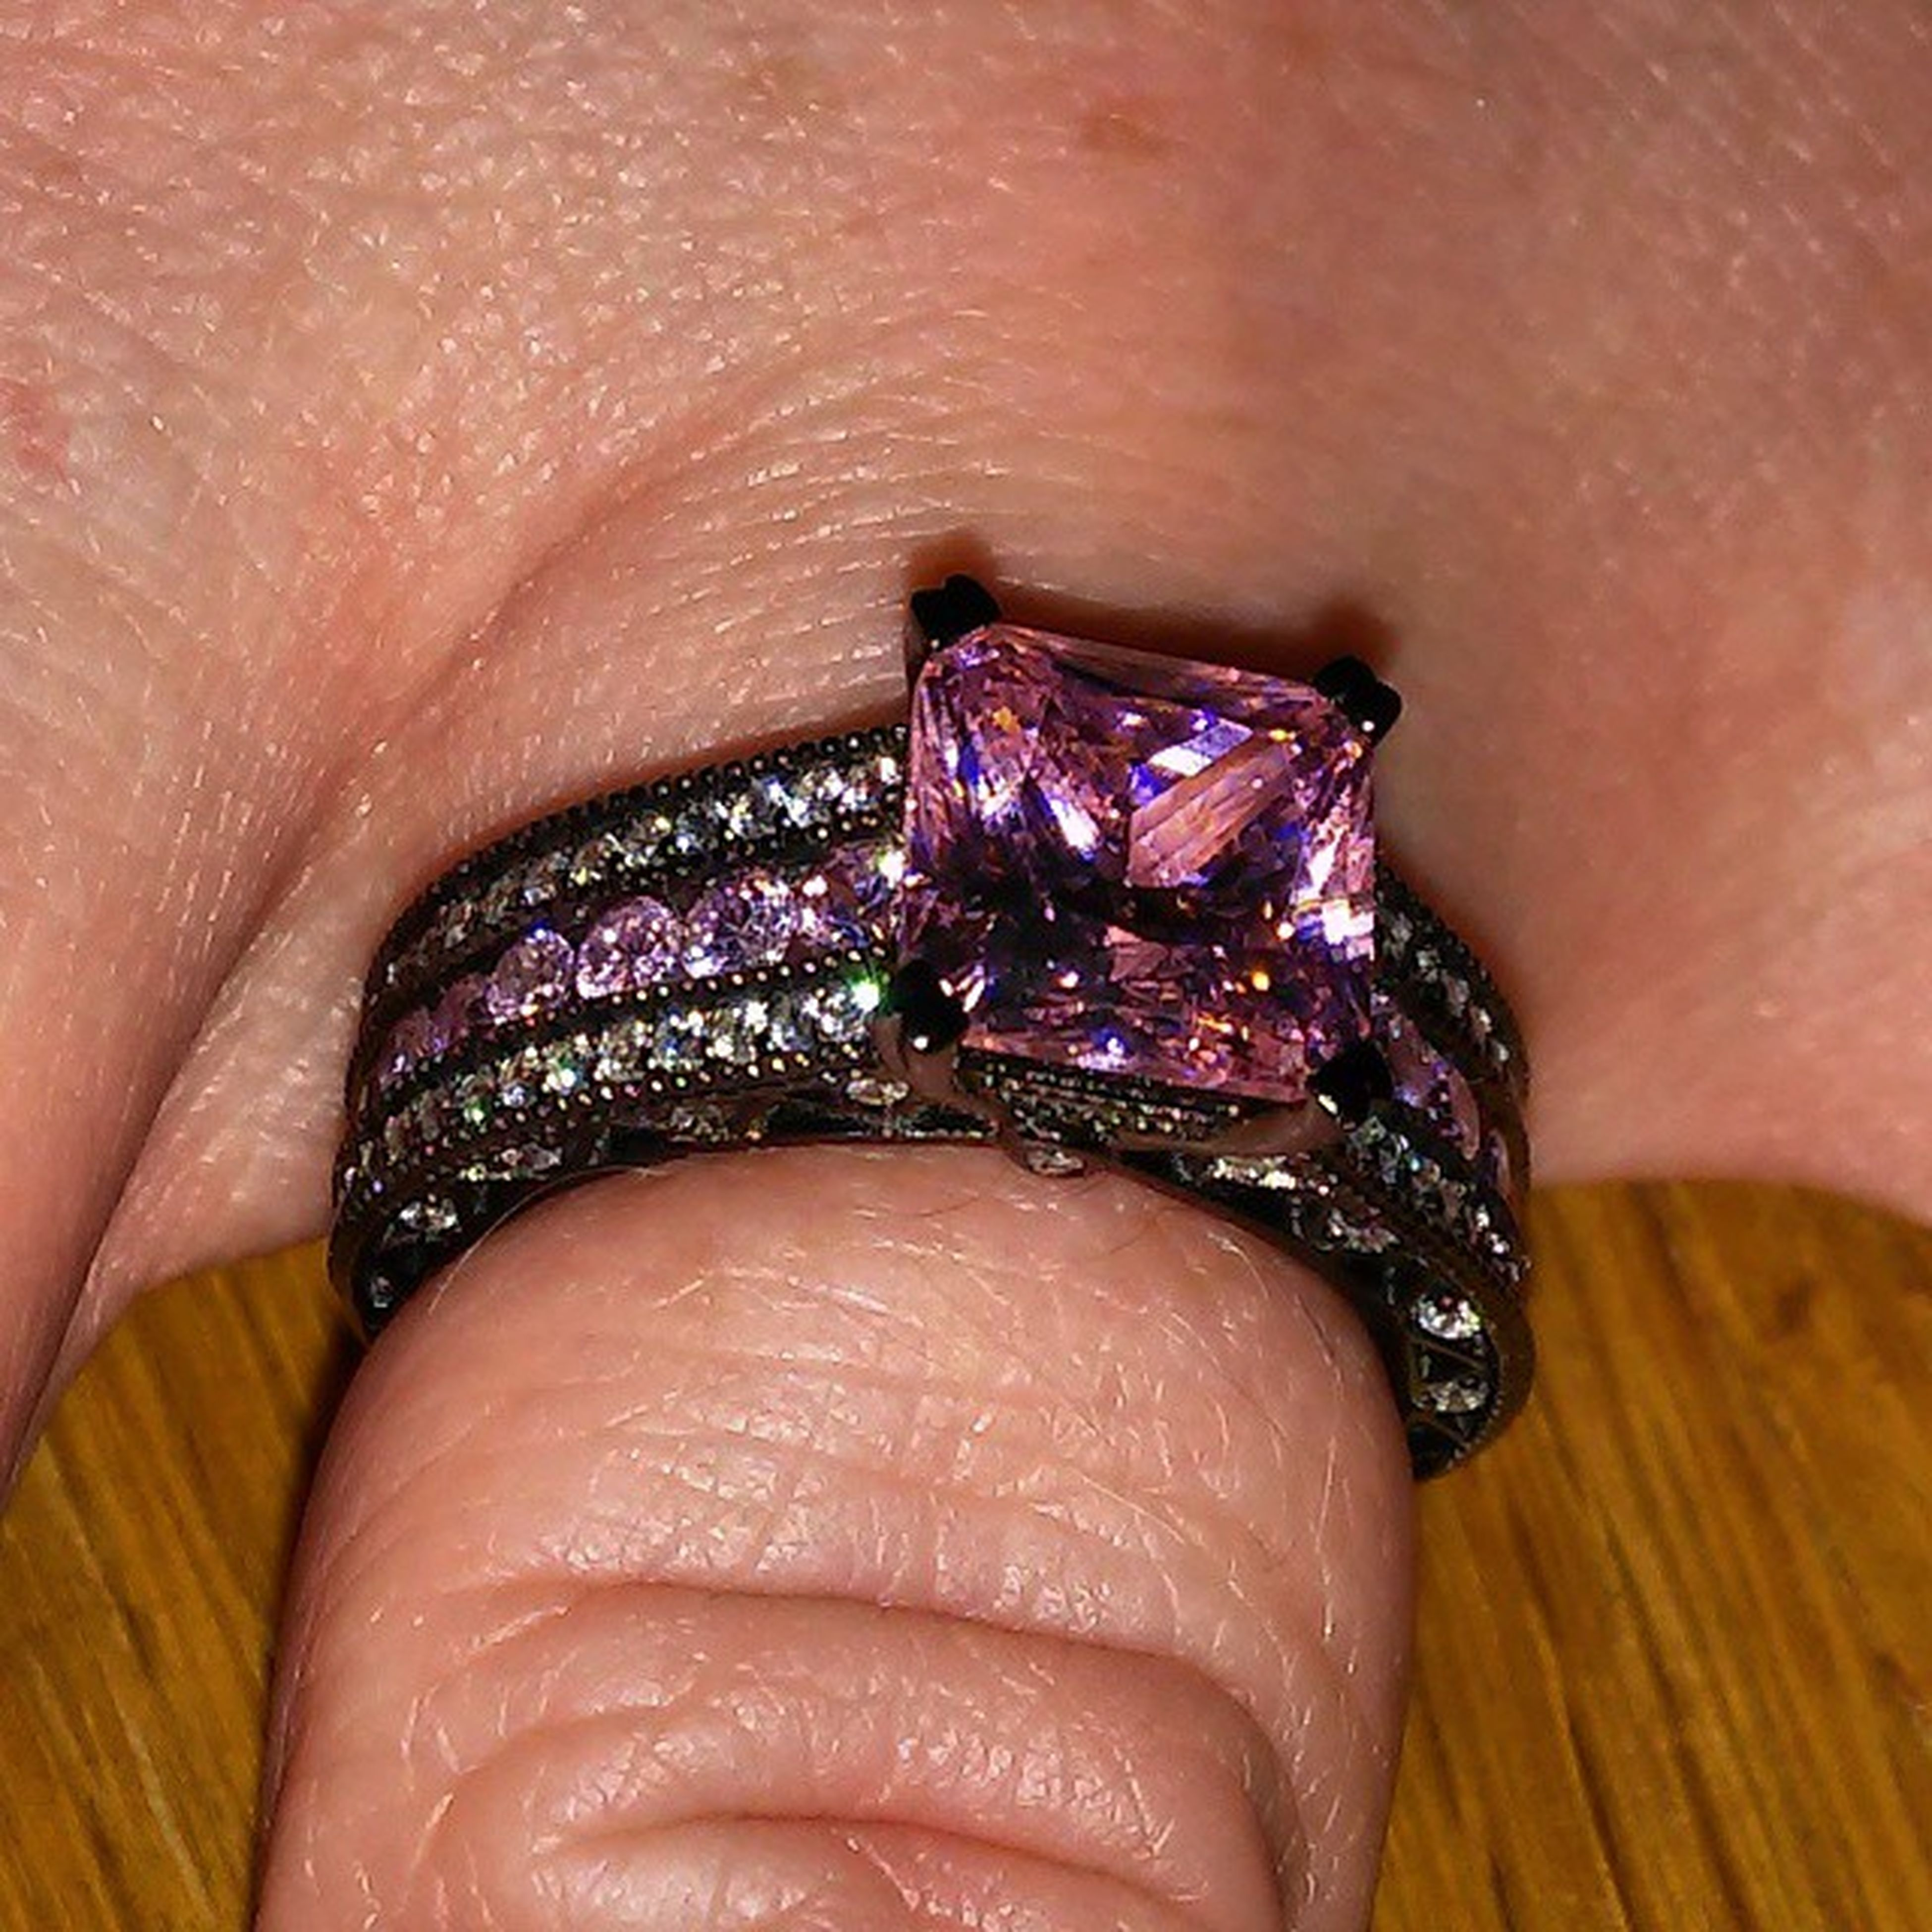 @cristykaos with her Ring on display... Iloveyou so very much.! You and i know what this means to us and thats all that matters.. Naturalbornkillers MickeyAndMallory2015 StarboyAndKaos StarboyStyle YourePerfectlyImperfect....I love you BabyGurl ! CalmingKaos Stardust Starboy CauseImAStar